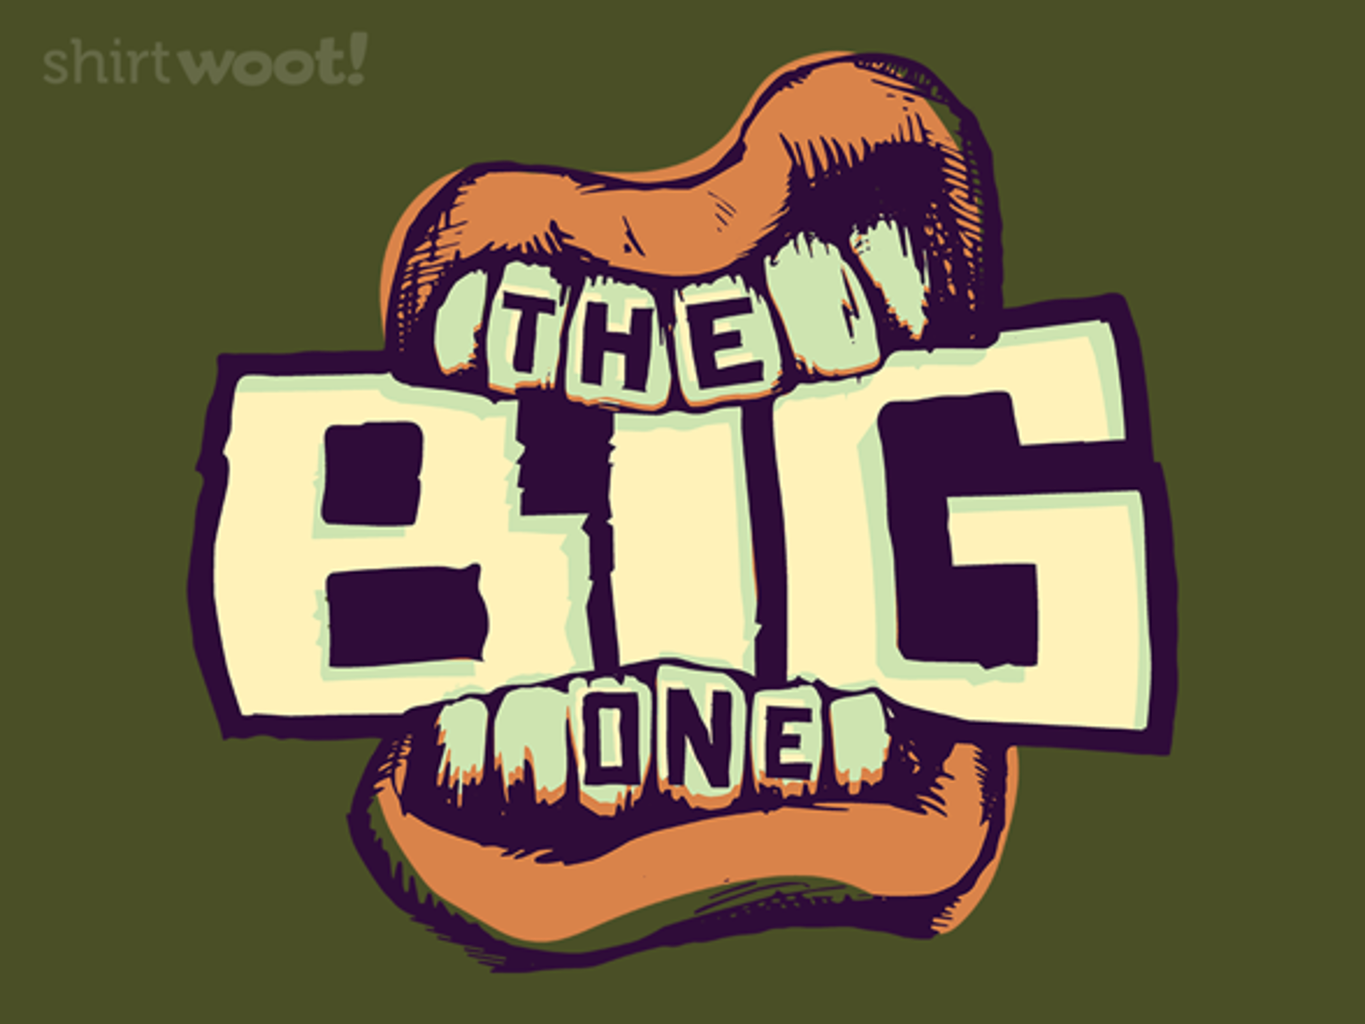 Woot!: Bite The Big One